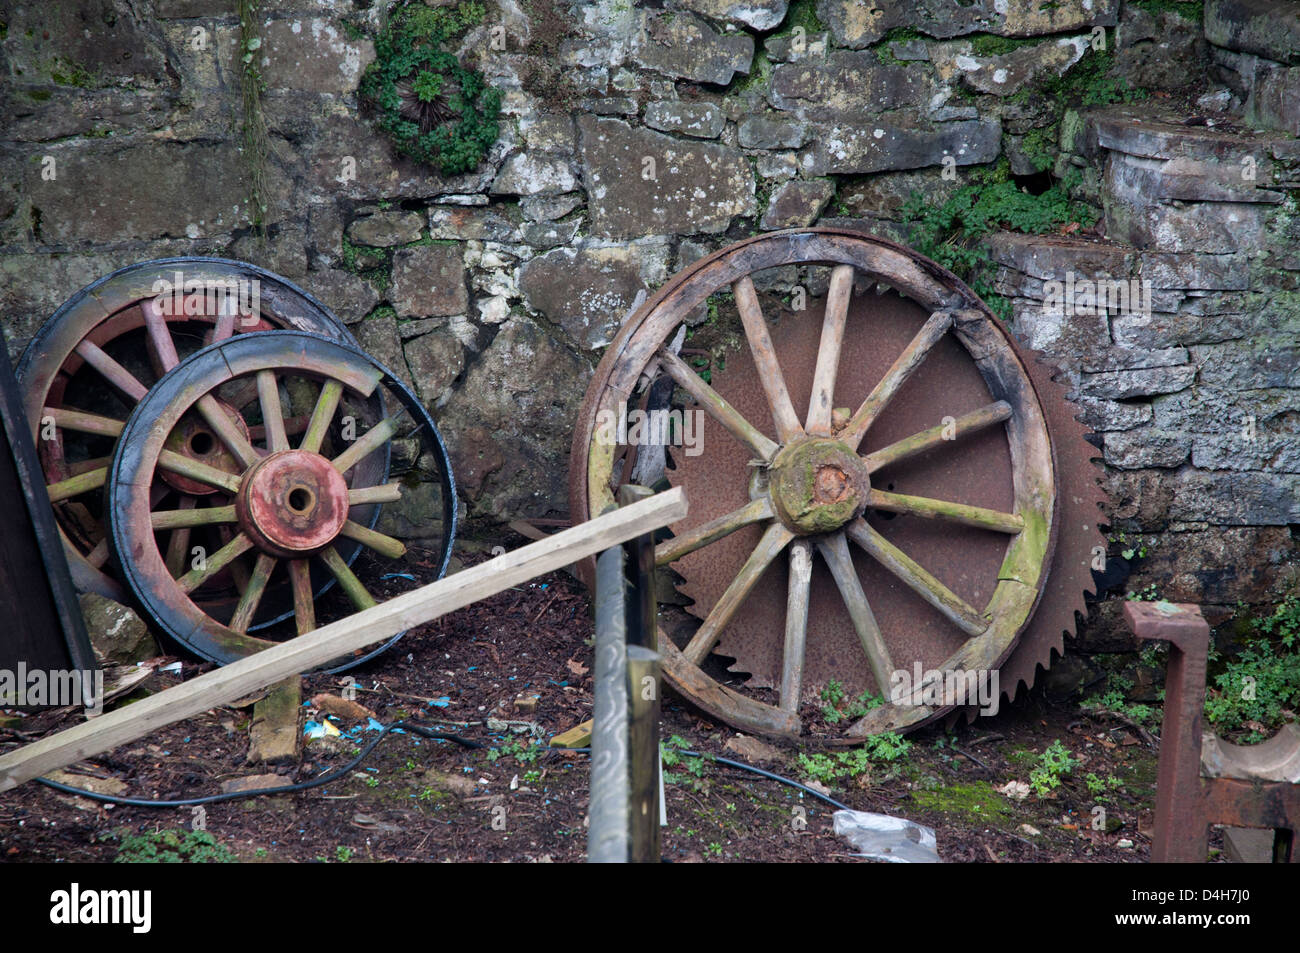 cart wheels, wooden, weathered, old circular saw blade, rusted,decrepit, against old stone wall - Stock Image